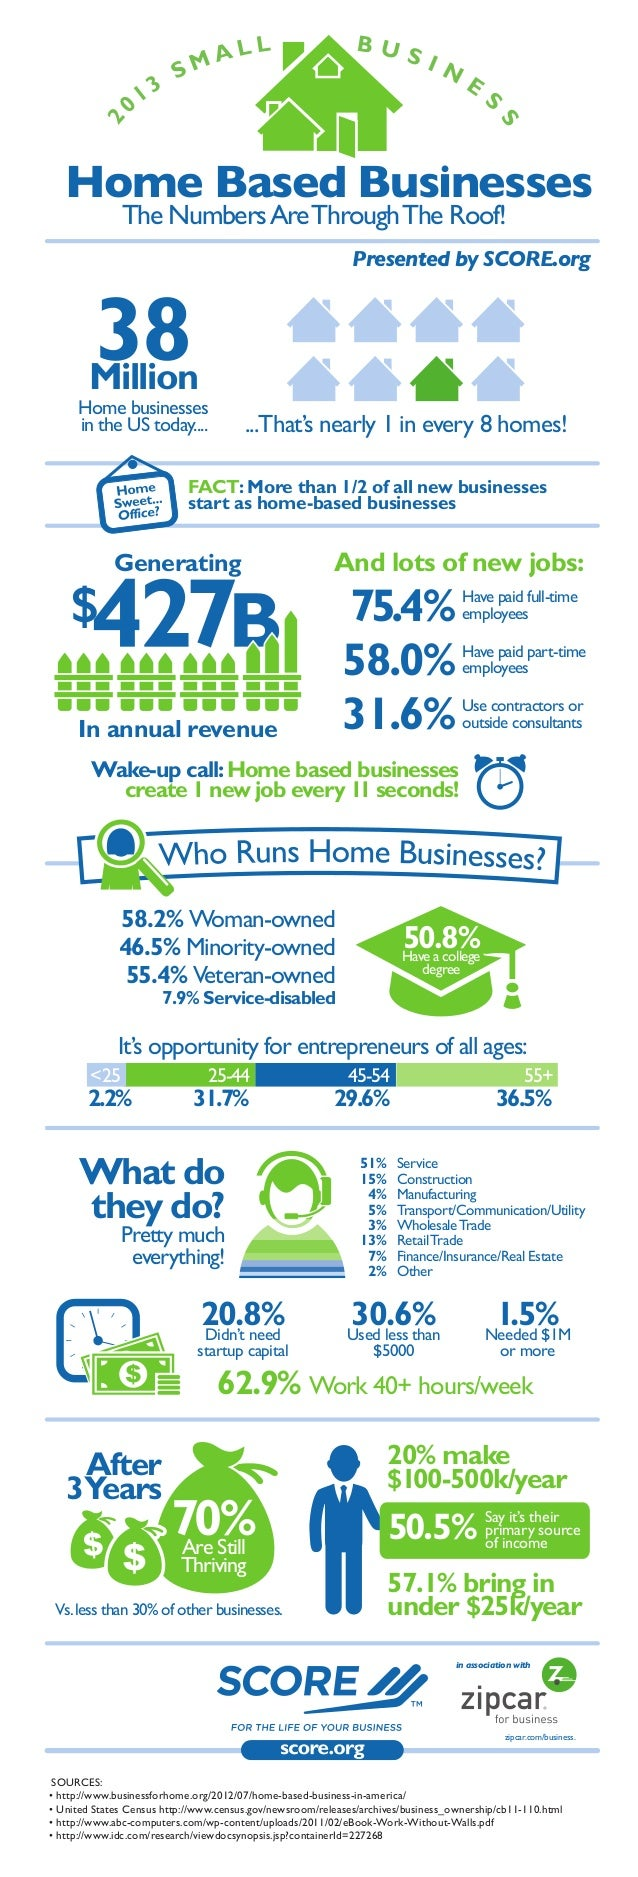 Home Based Businesses The Numbers Are Through The Roof!  Presented by SCORE.org  38 Million  Home businesses in the US tod...